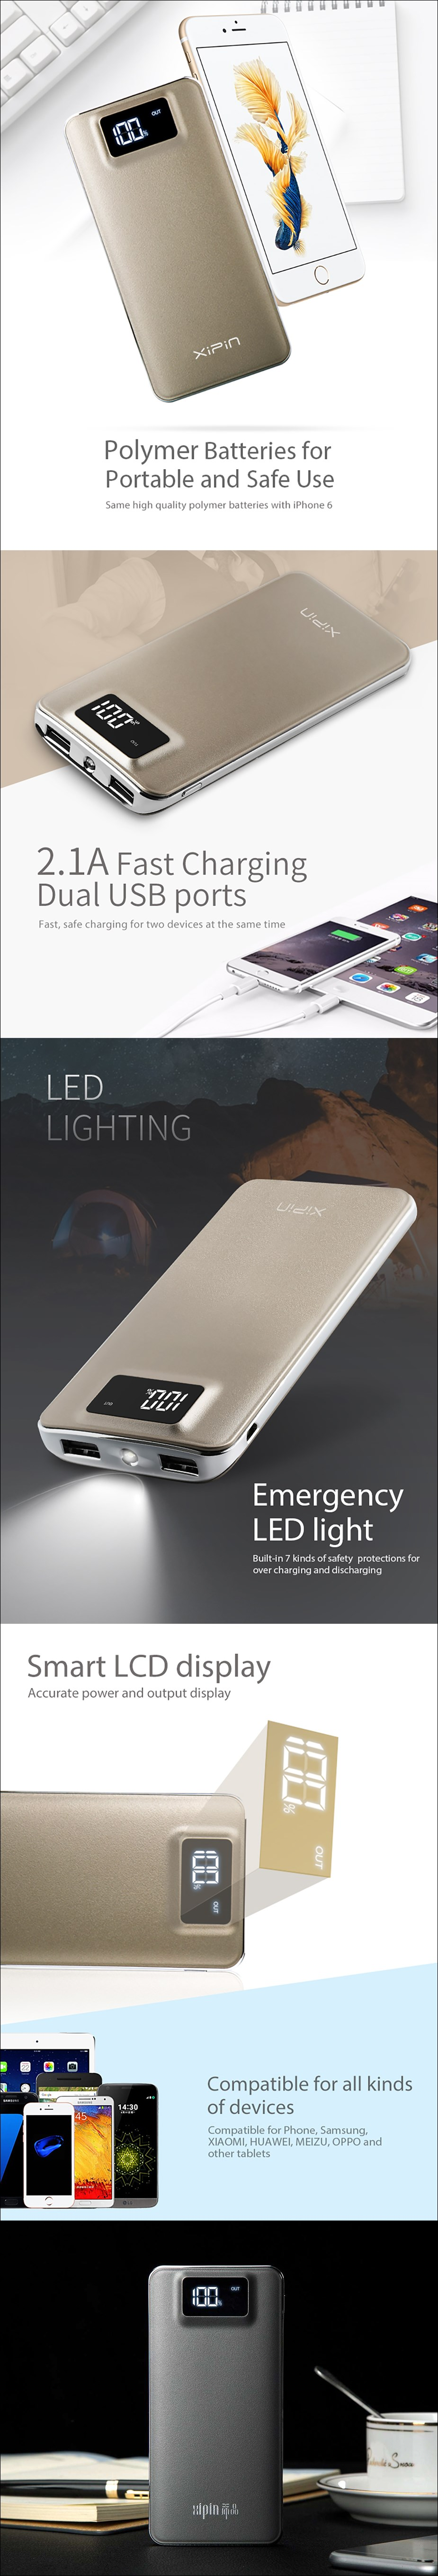 XiPin S12 11000mAh Dual USB Power Bank with LCD Display - Grey - Overview 1